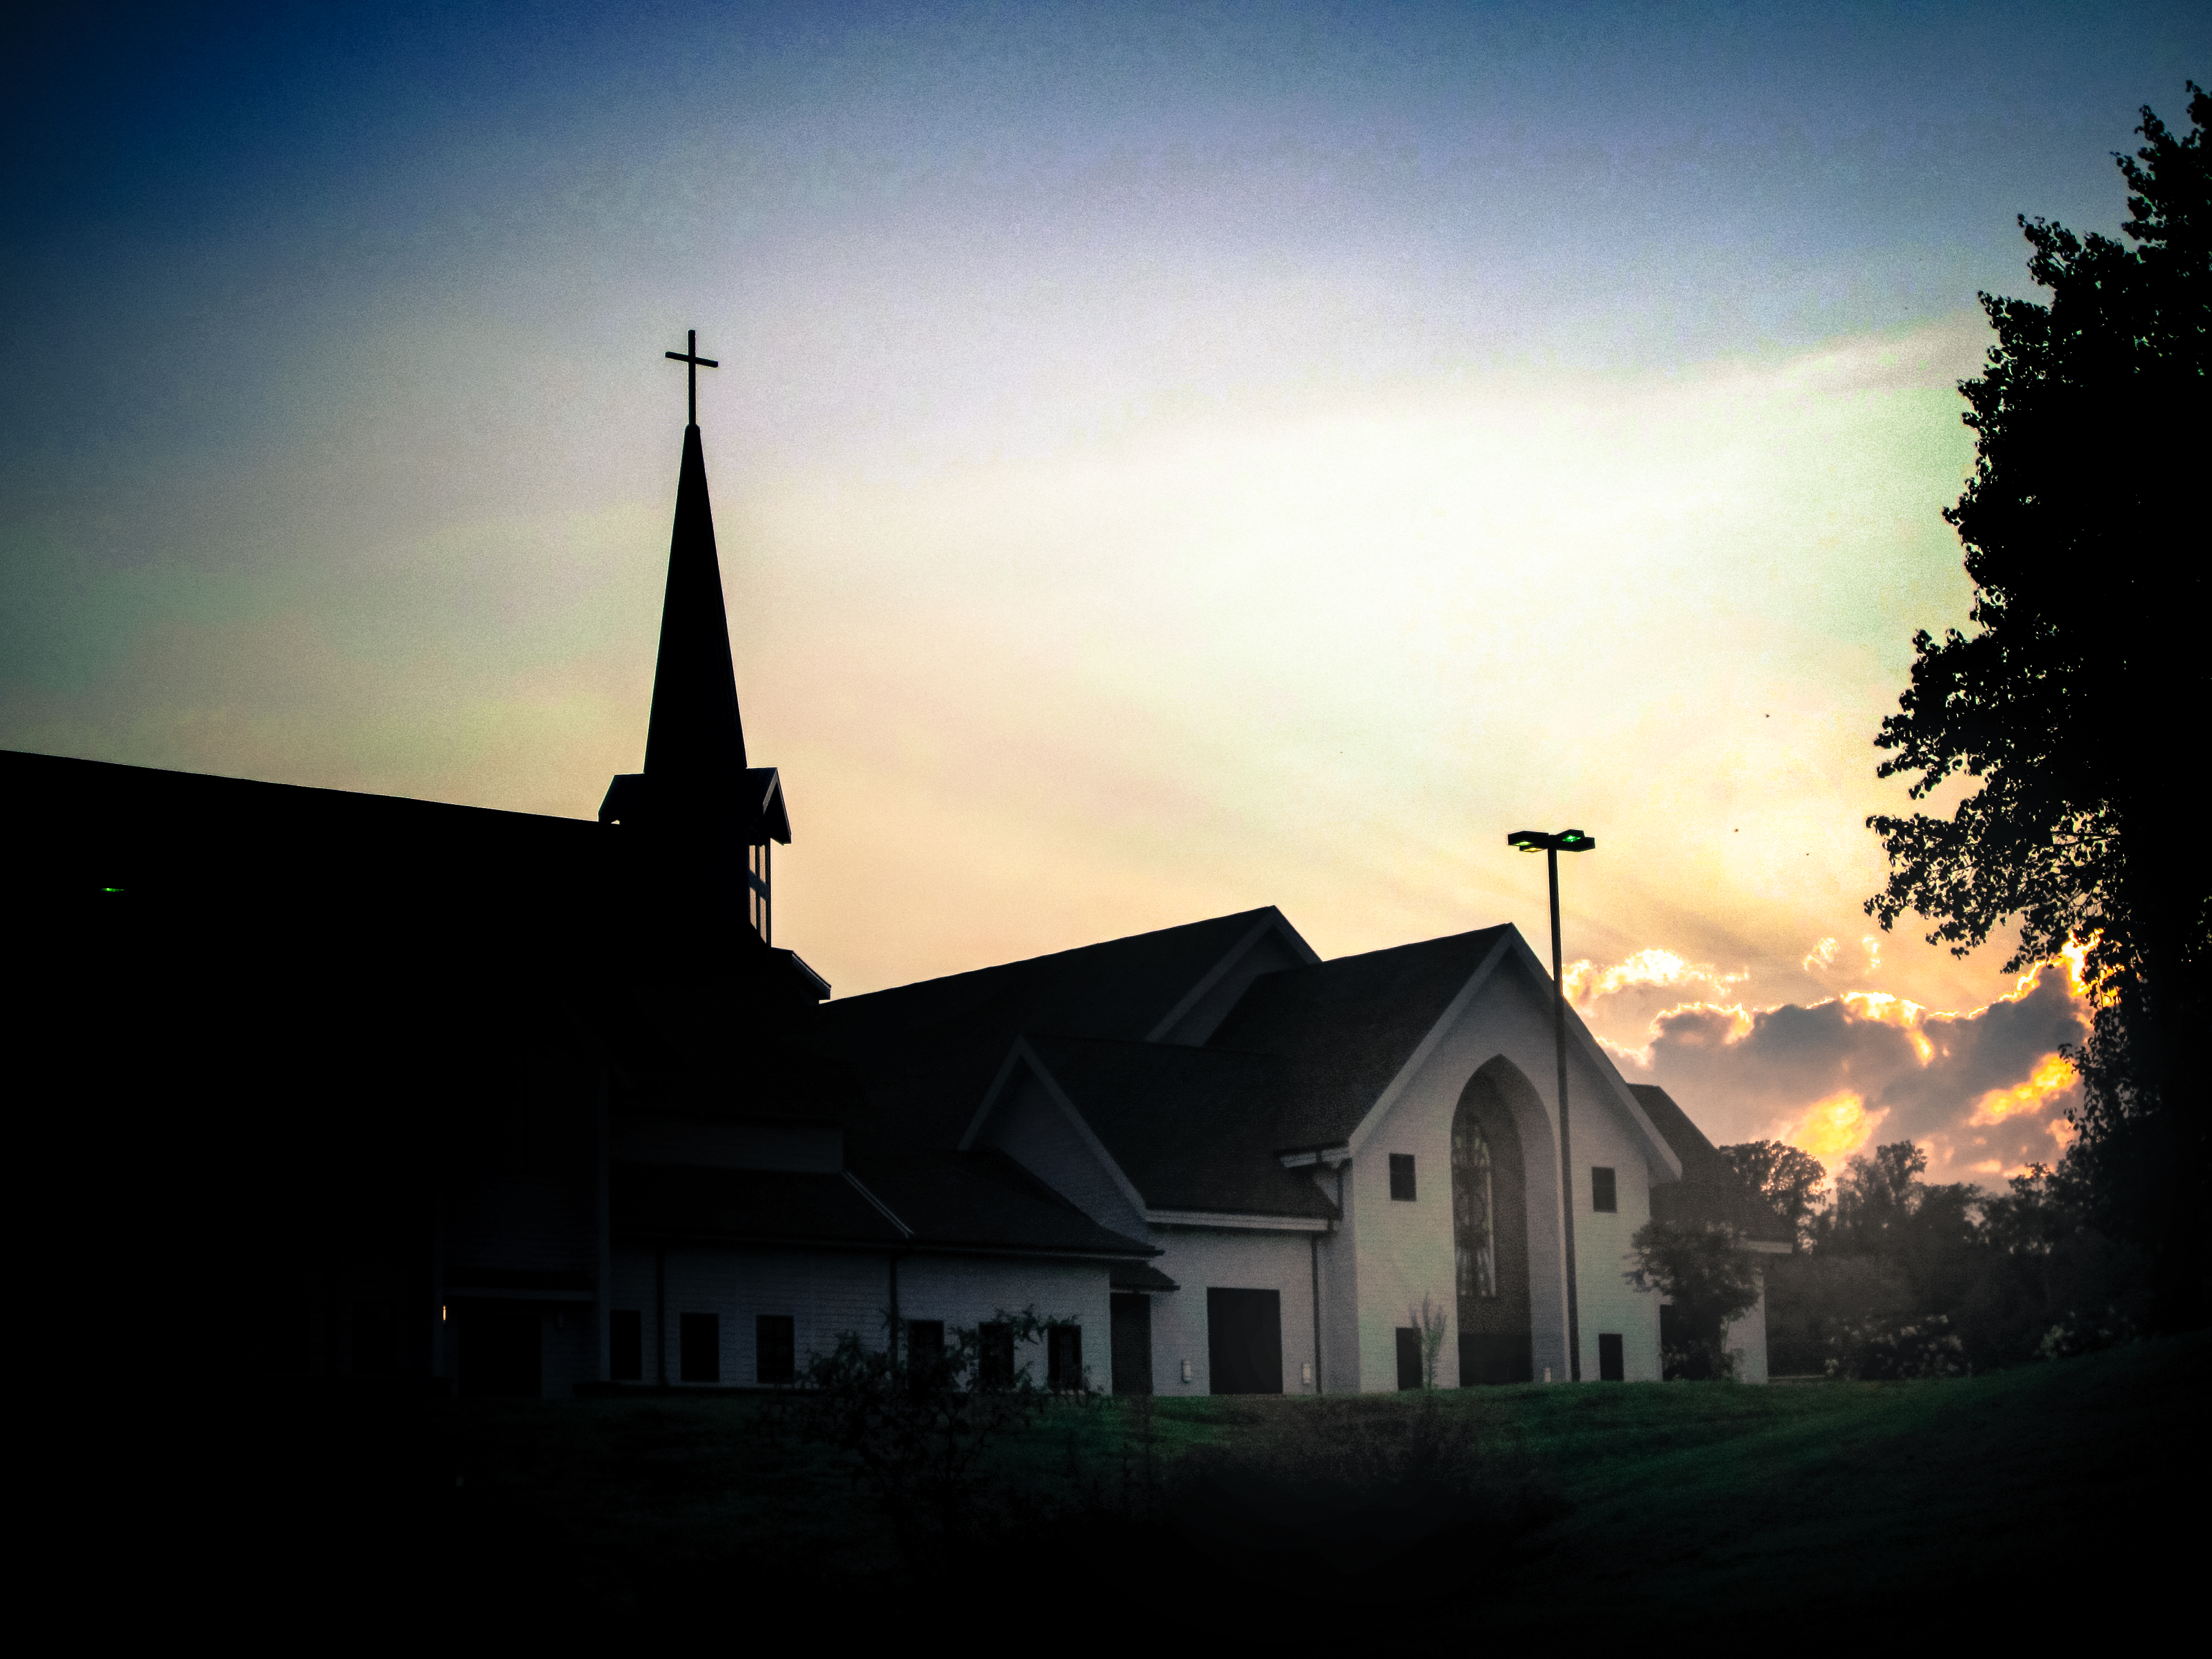 46. There are churches for most every denomination